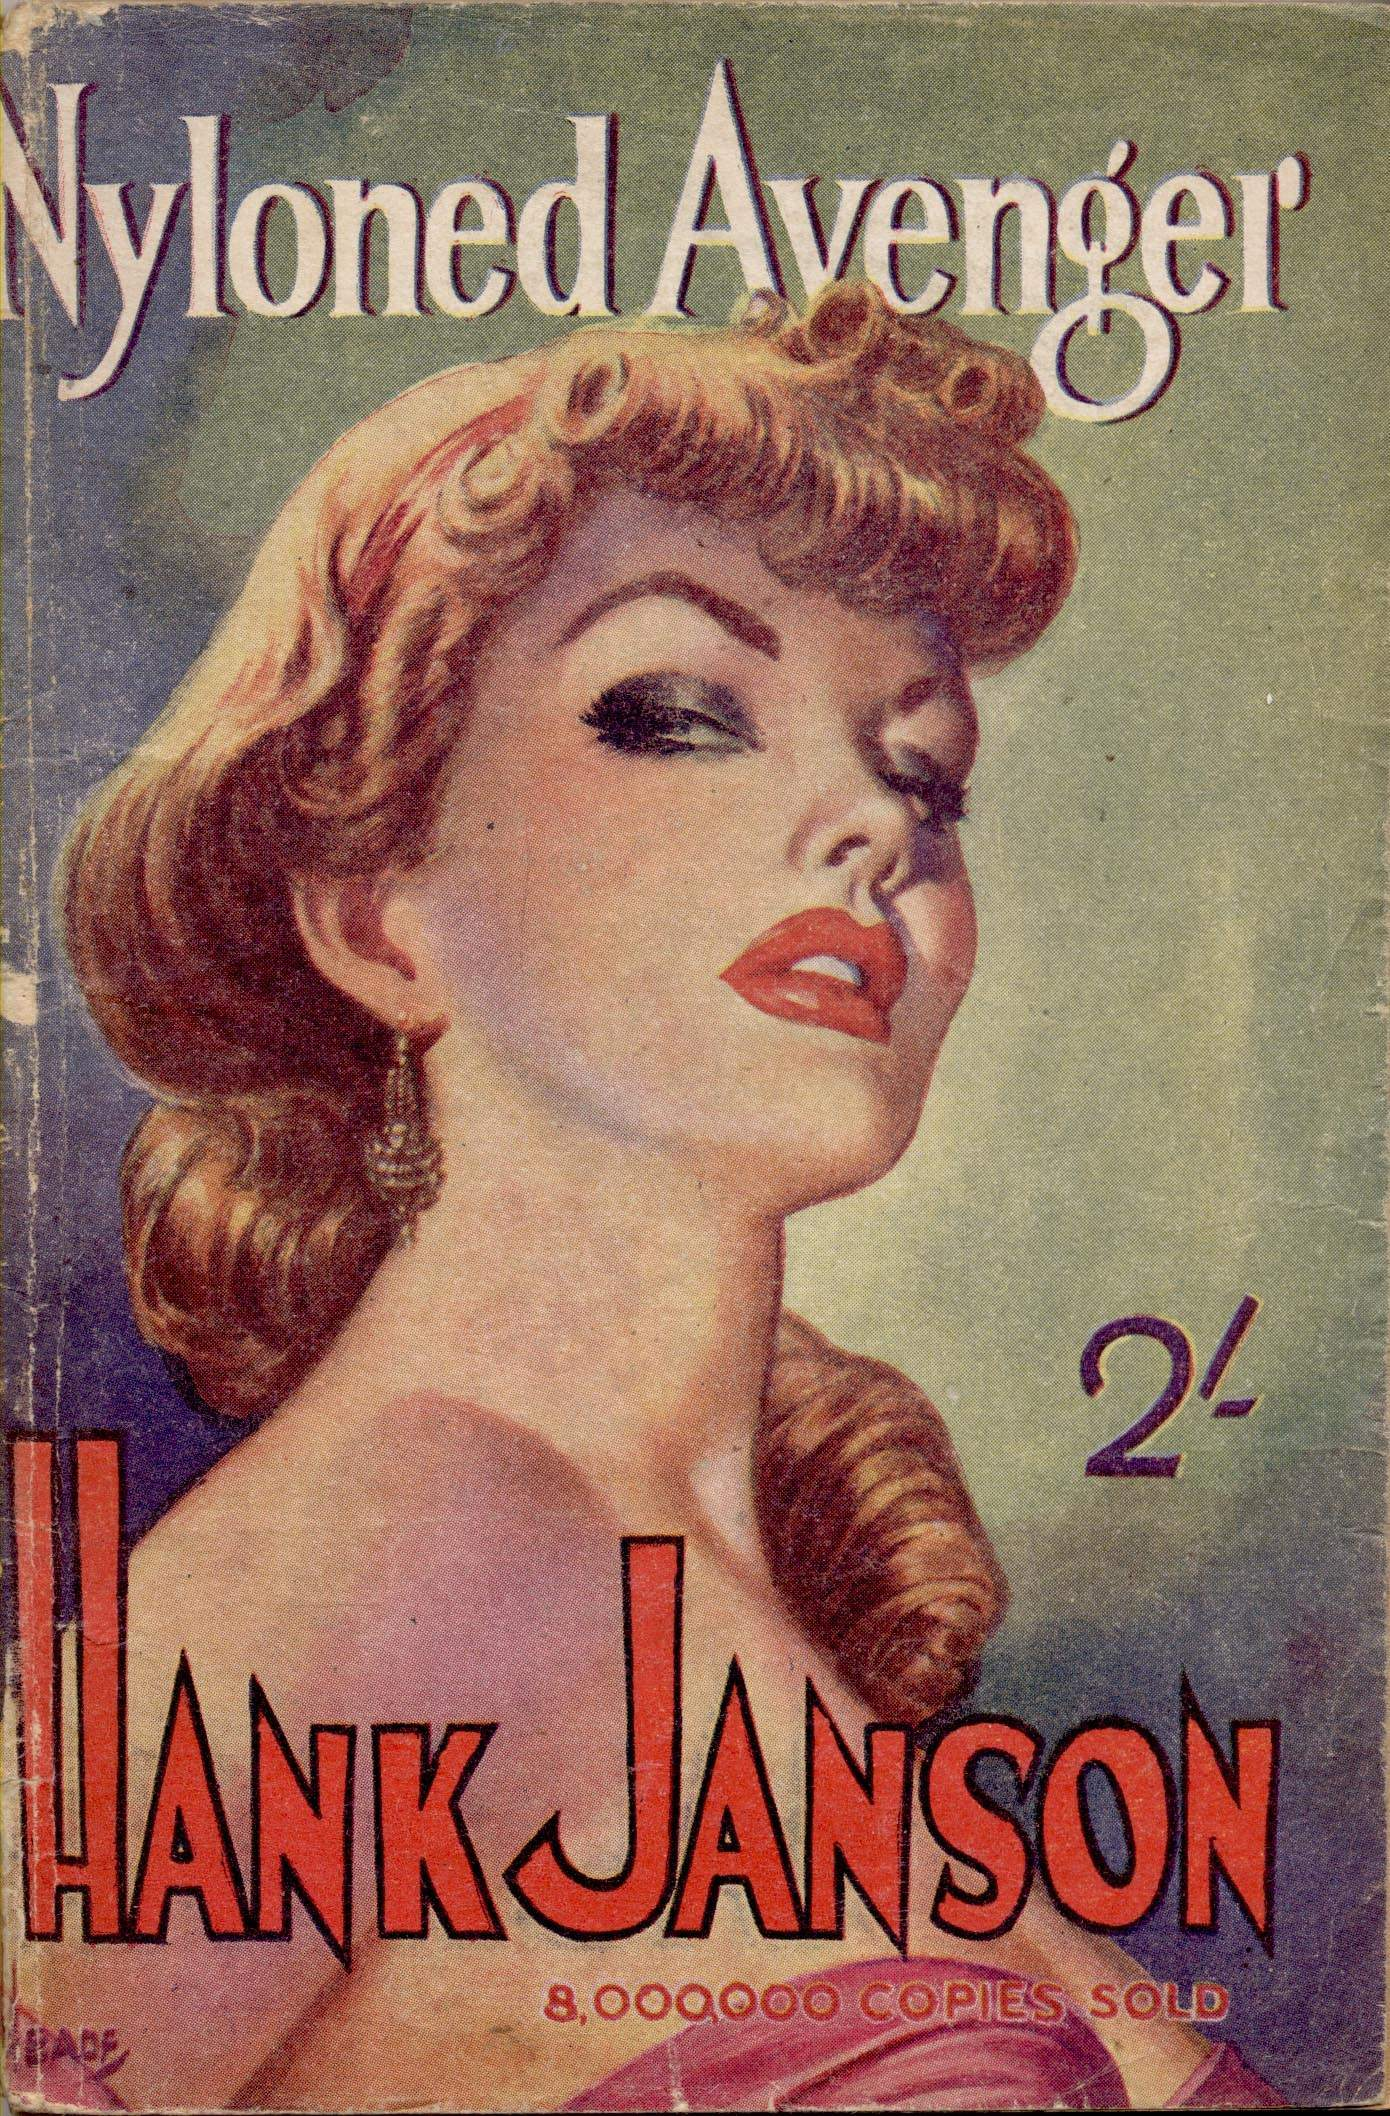 Nyloned Avenger by Hank Janson. Cover art by Reginald Heade